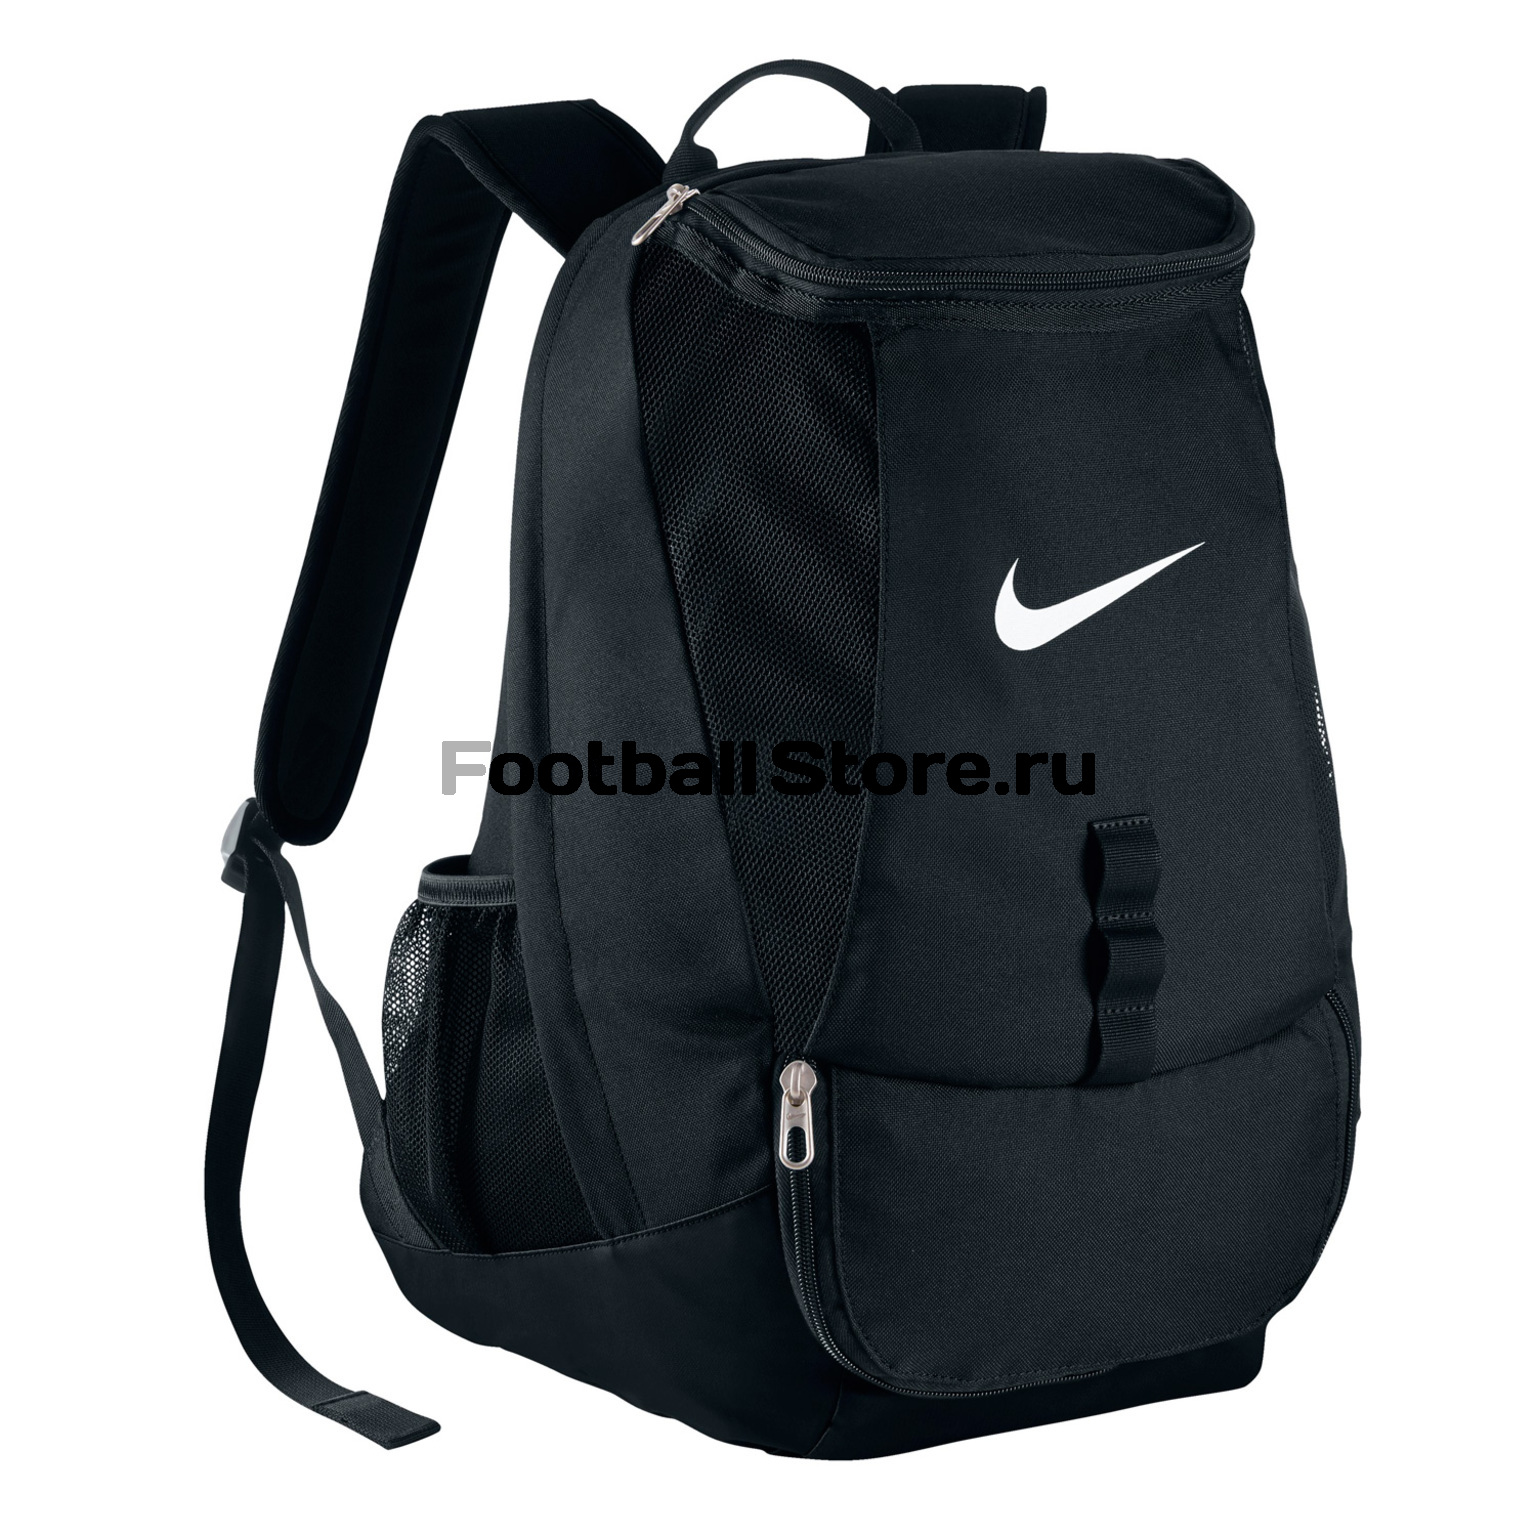 цена Сумки/Рюкзаки Nike Рюкзак Nike Club Team Swoosh BackPack BA5190-010 онлайн в 2017 году